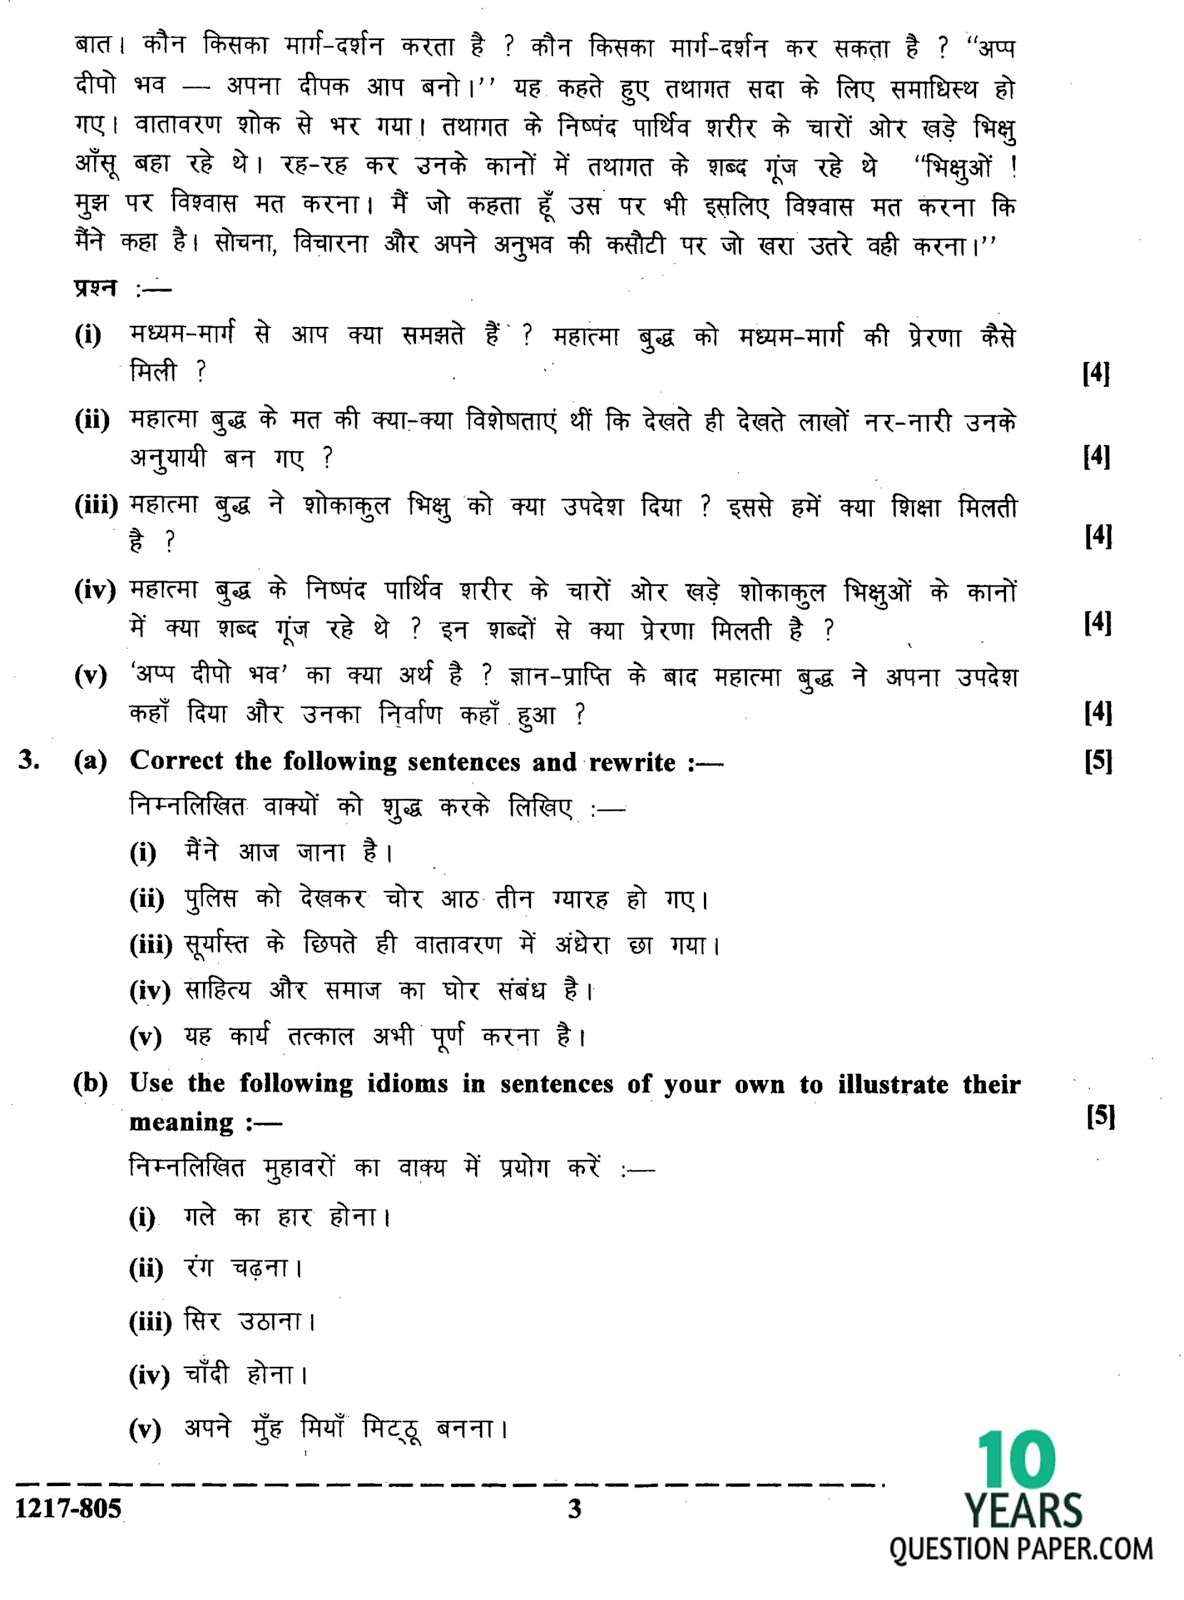 isc 2017 class 12th Hindi question paper